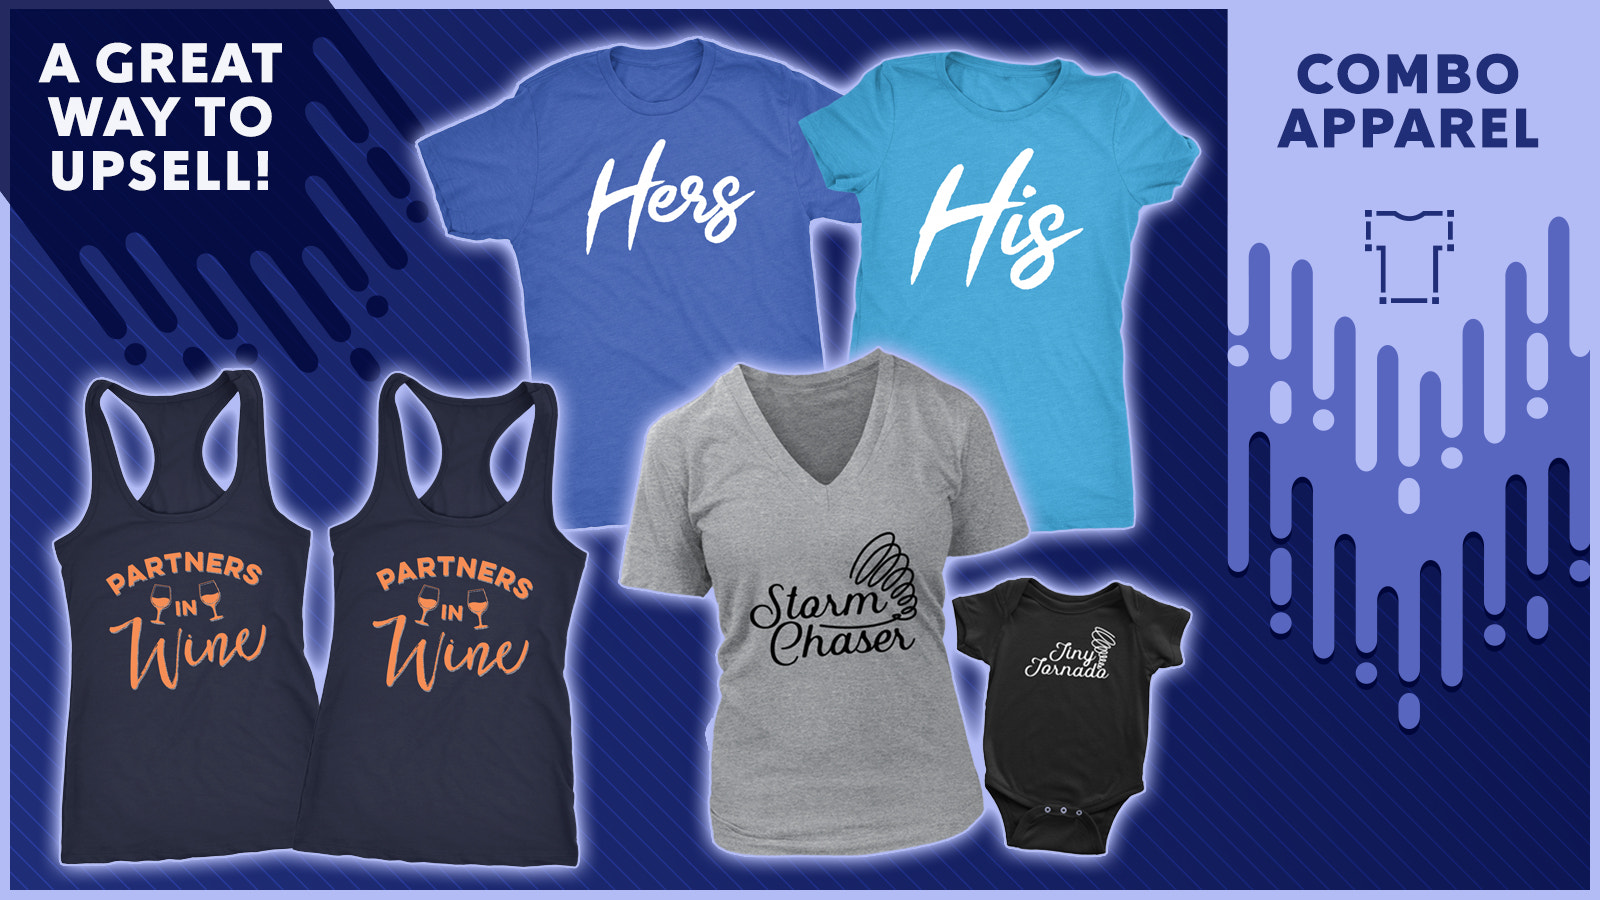 Combo apparel: Great way to upsell